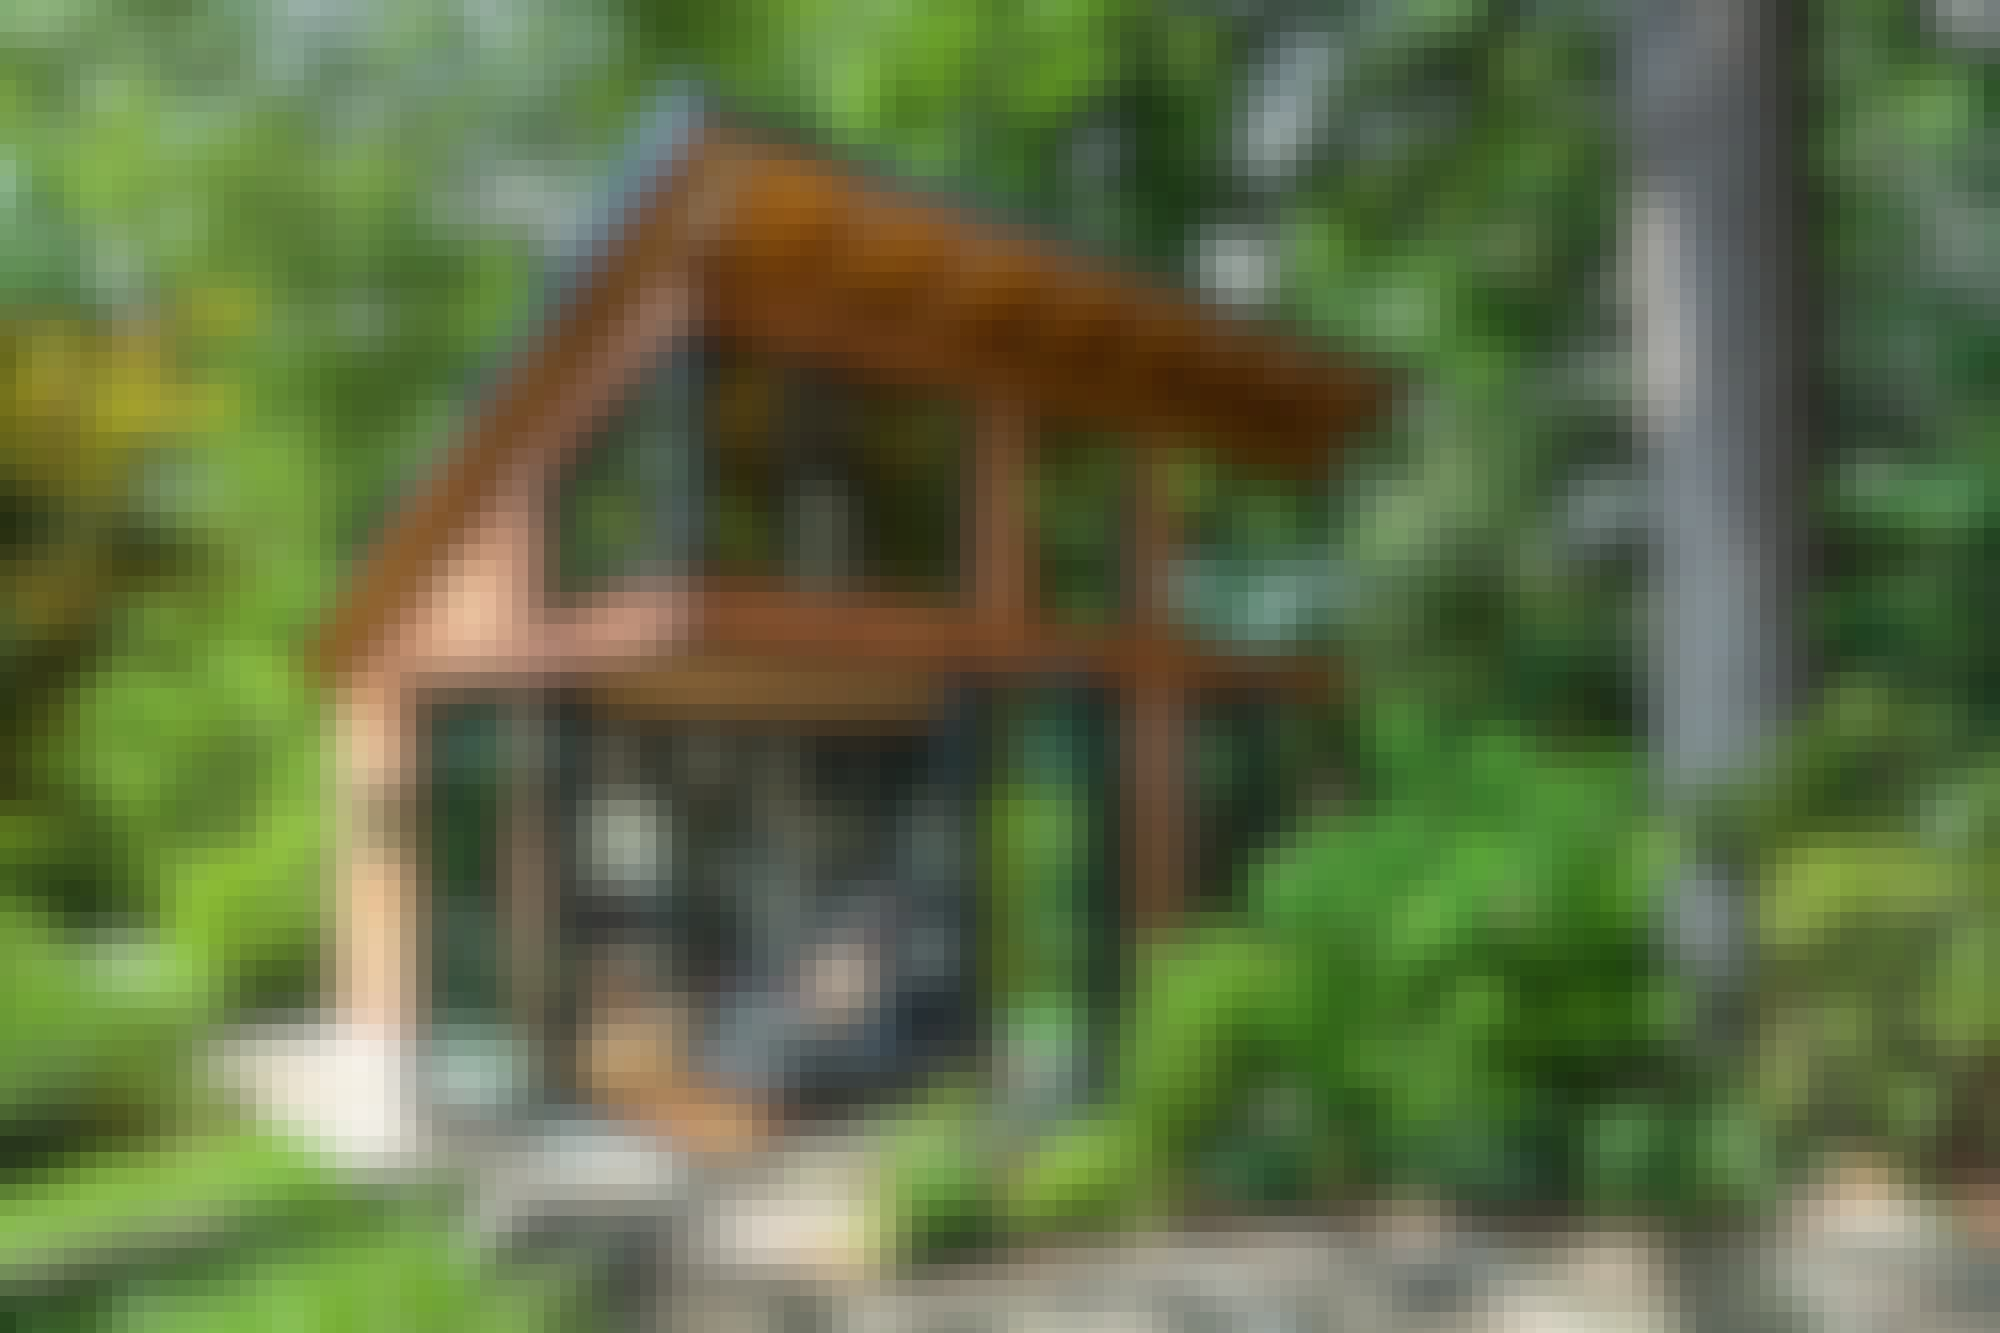 Accessory dwelling units as home office